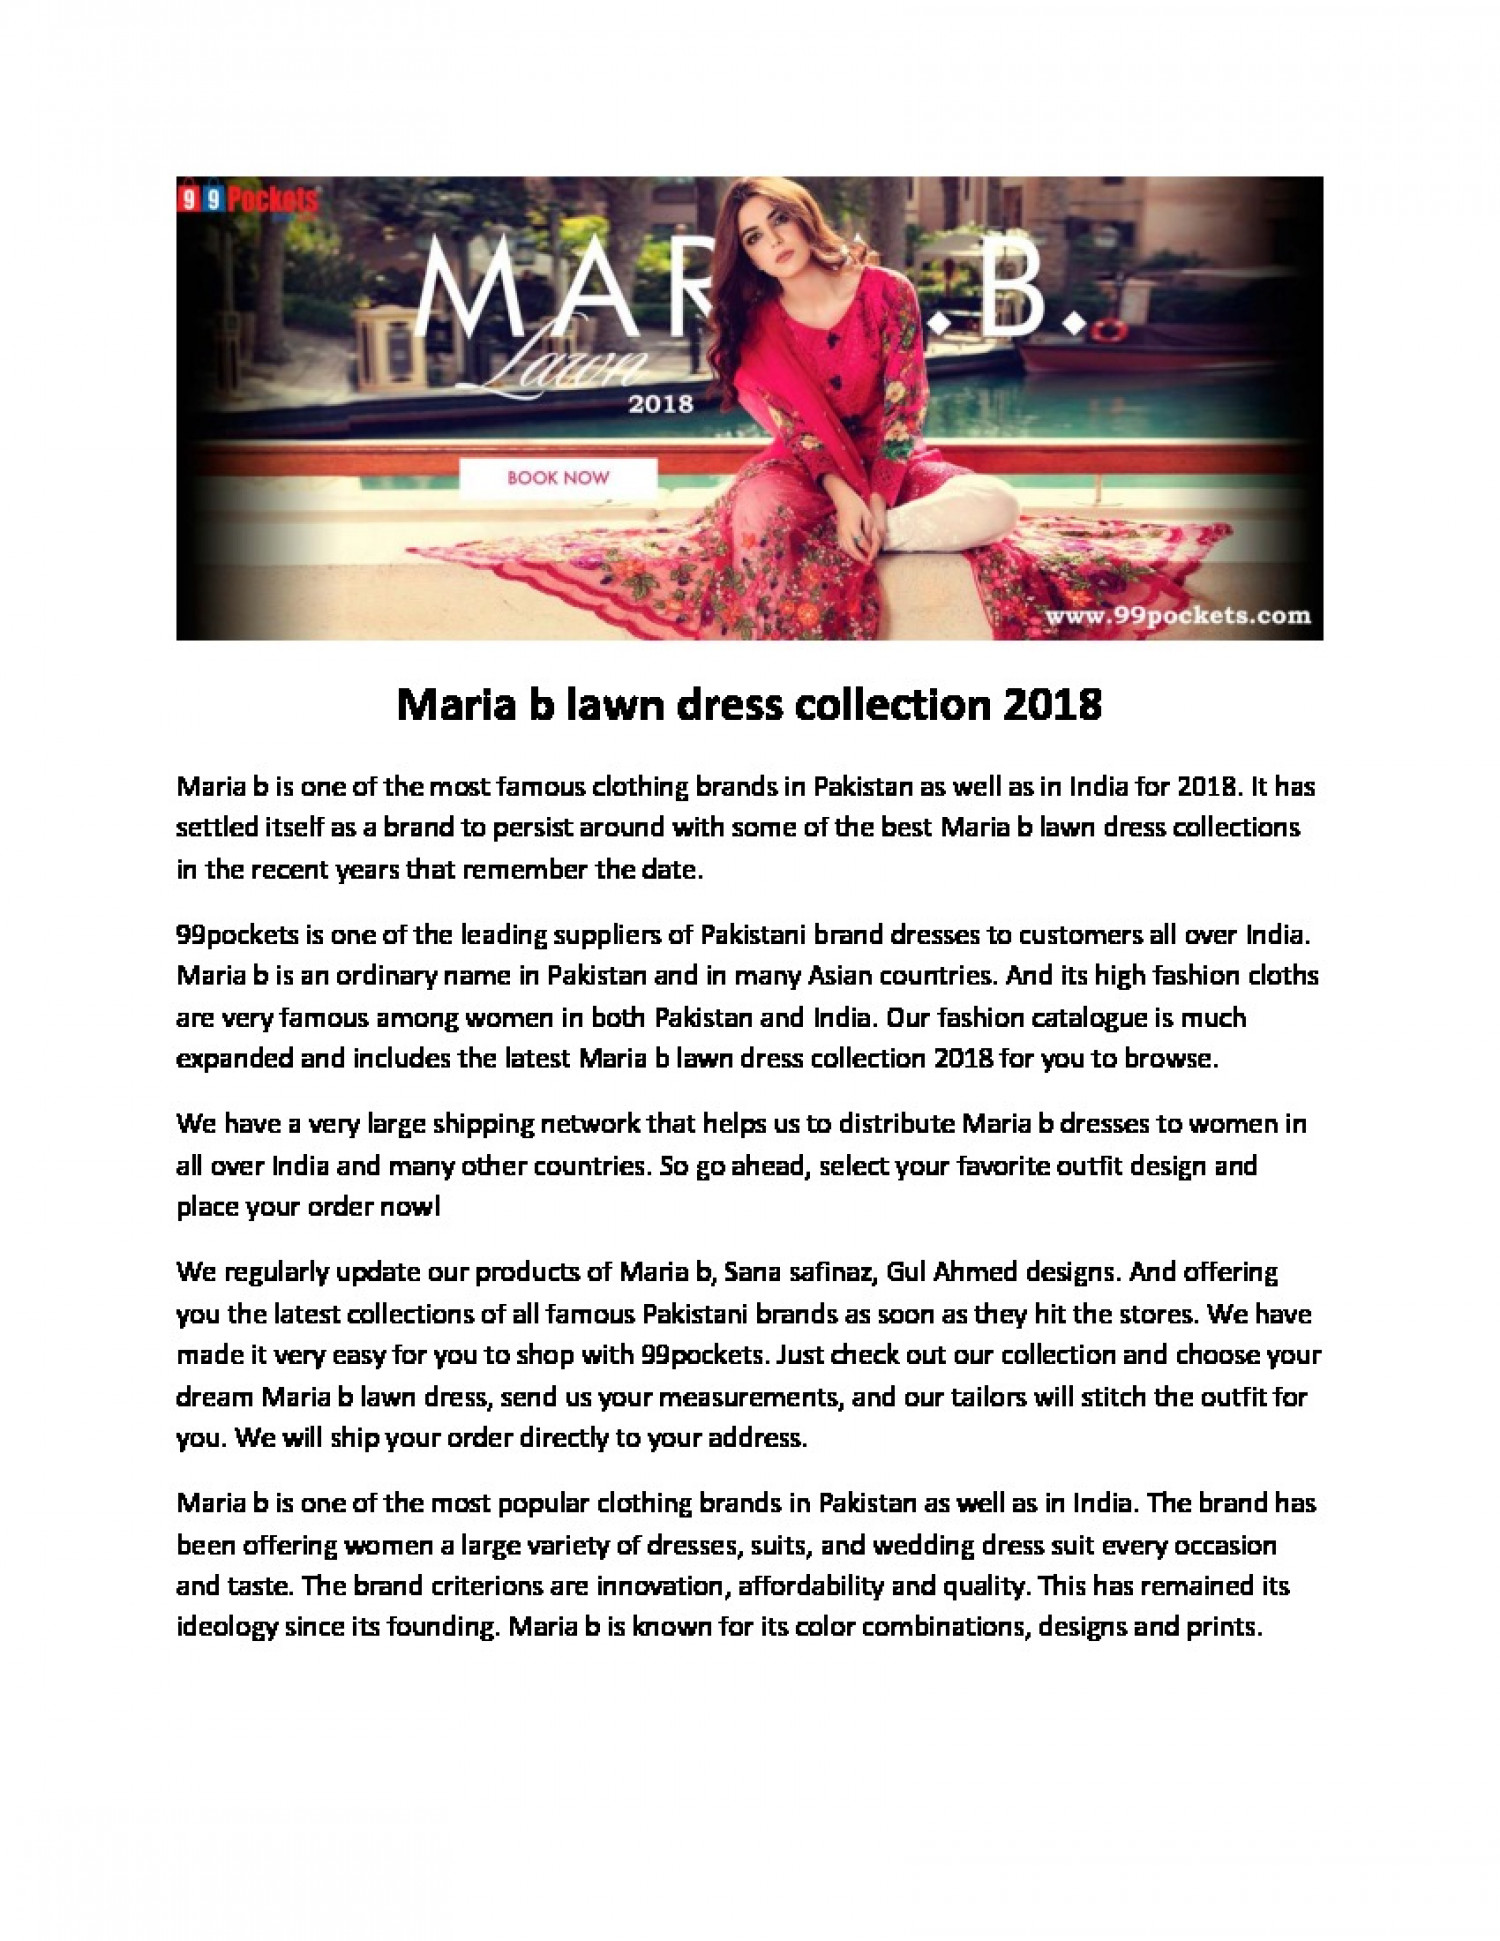 Maria b lawn dress collection 2018 Infographic